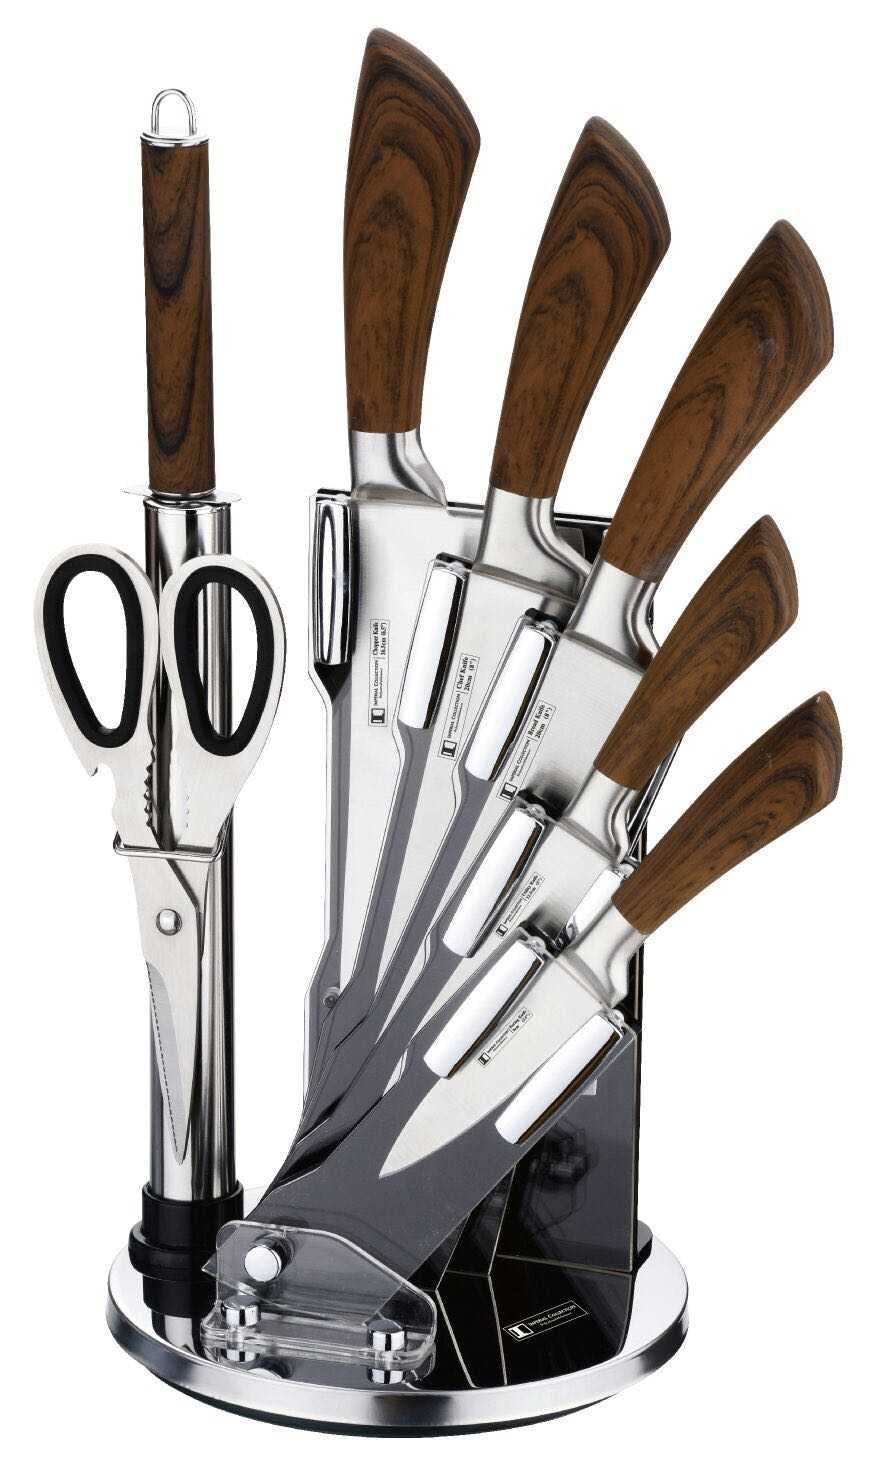 Imperial Collection Im Kst18 Non Stick Coating Knife Set